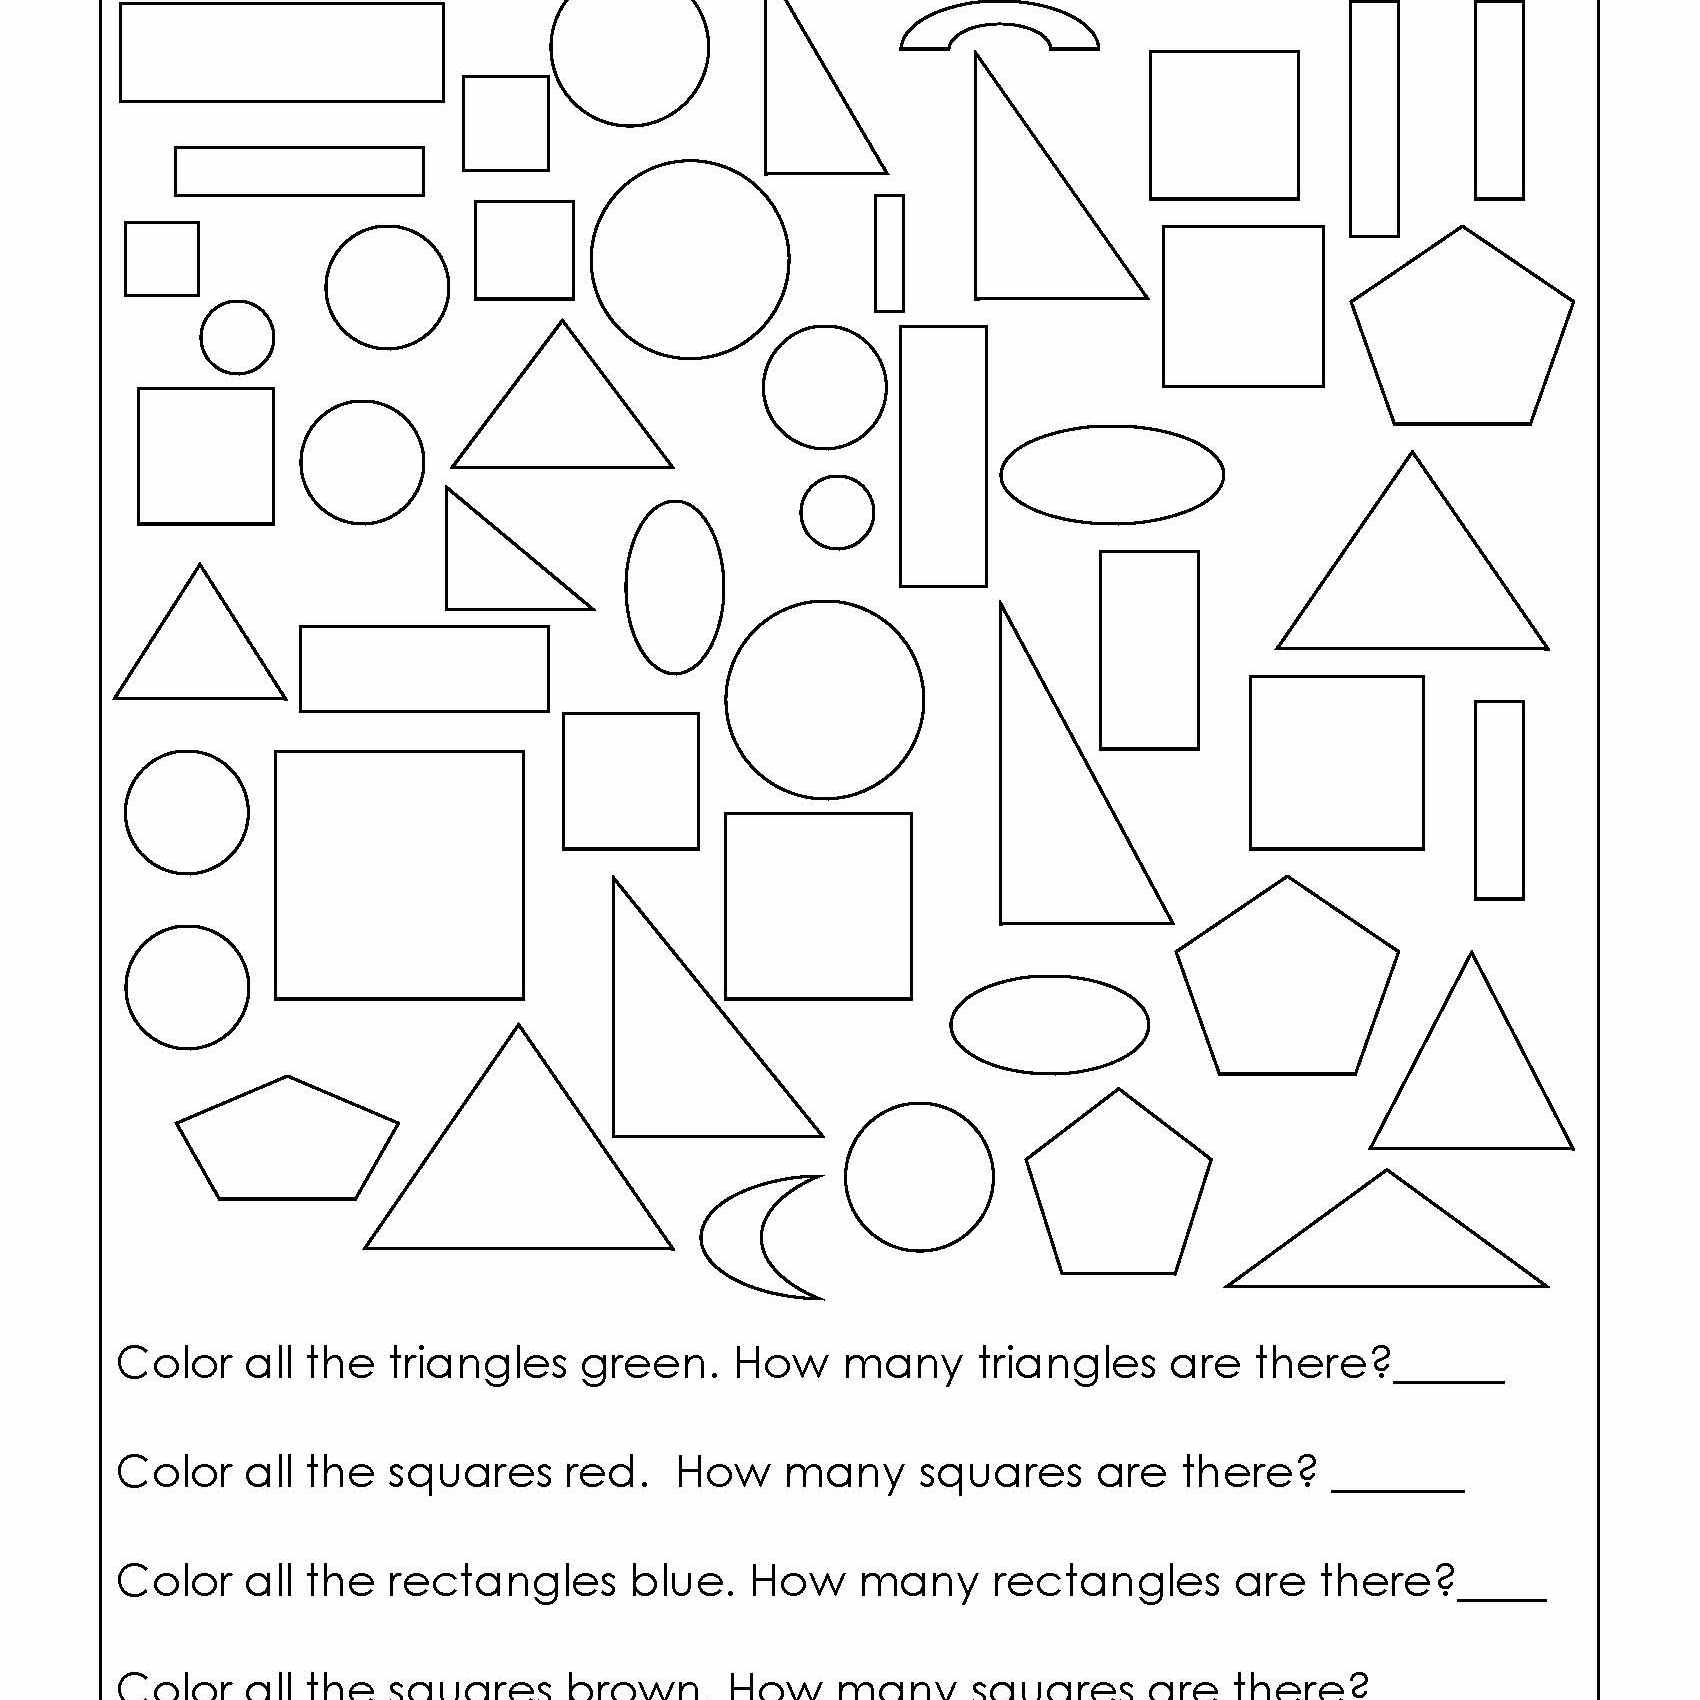 small resolution of 2 Easy Printable Color by Addition Worksheet Geometry Worksheets for  Students in 1st Grade   Geometry worksheets